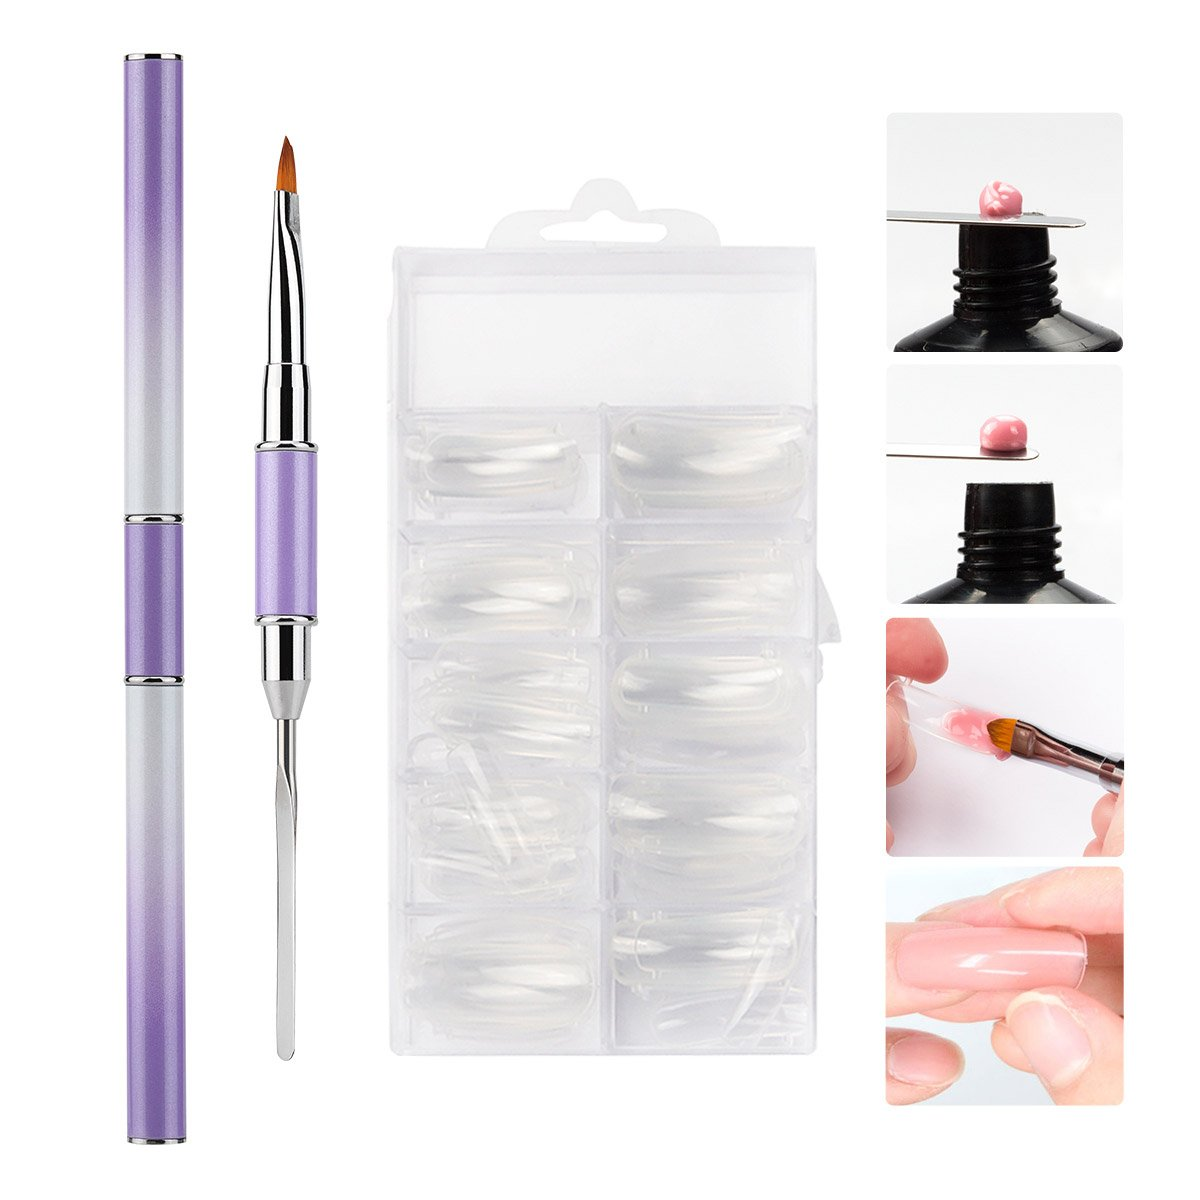 Vrenmol Poly Gel Nail Brush Dual-ended Slice Shape Tool with 100pcs Clear Dual Nail System Form Fake Nail Tips for UV Gel Nail Polish 10 Size by vrenmol